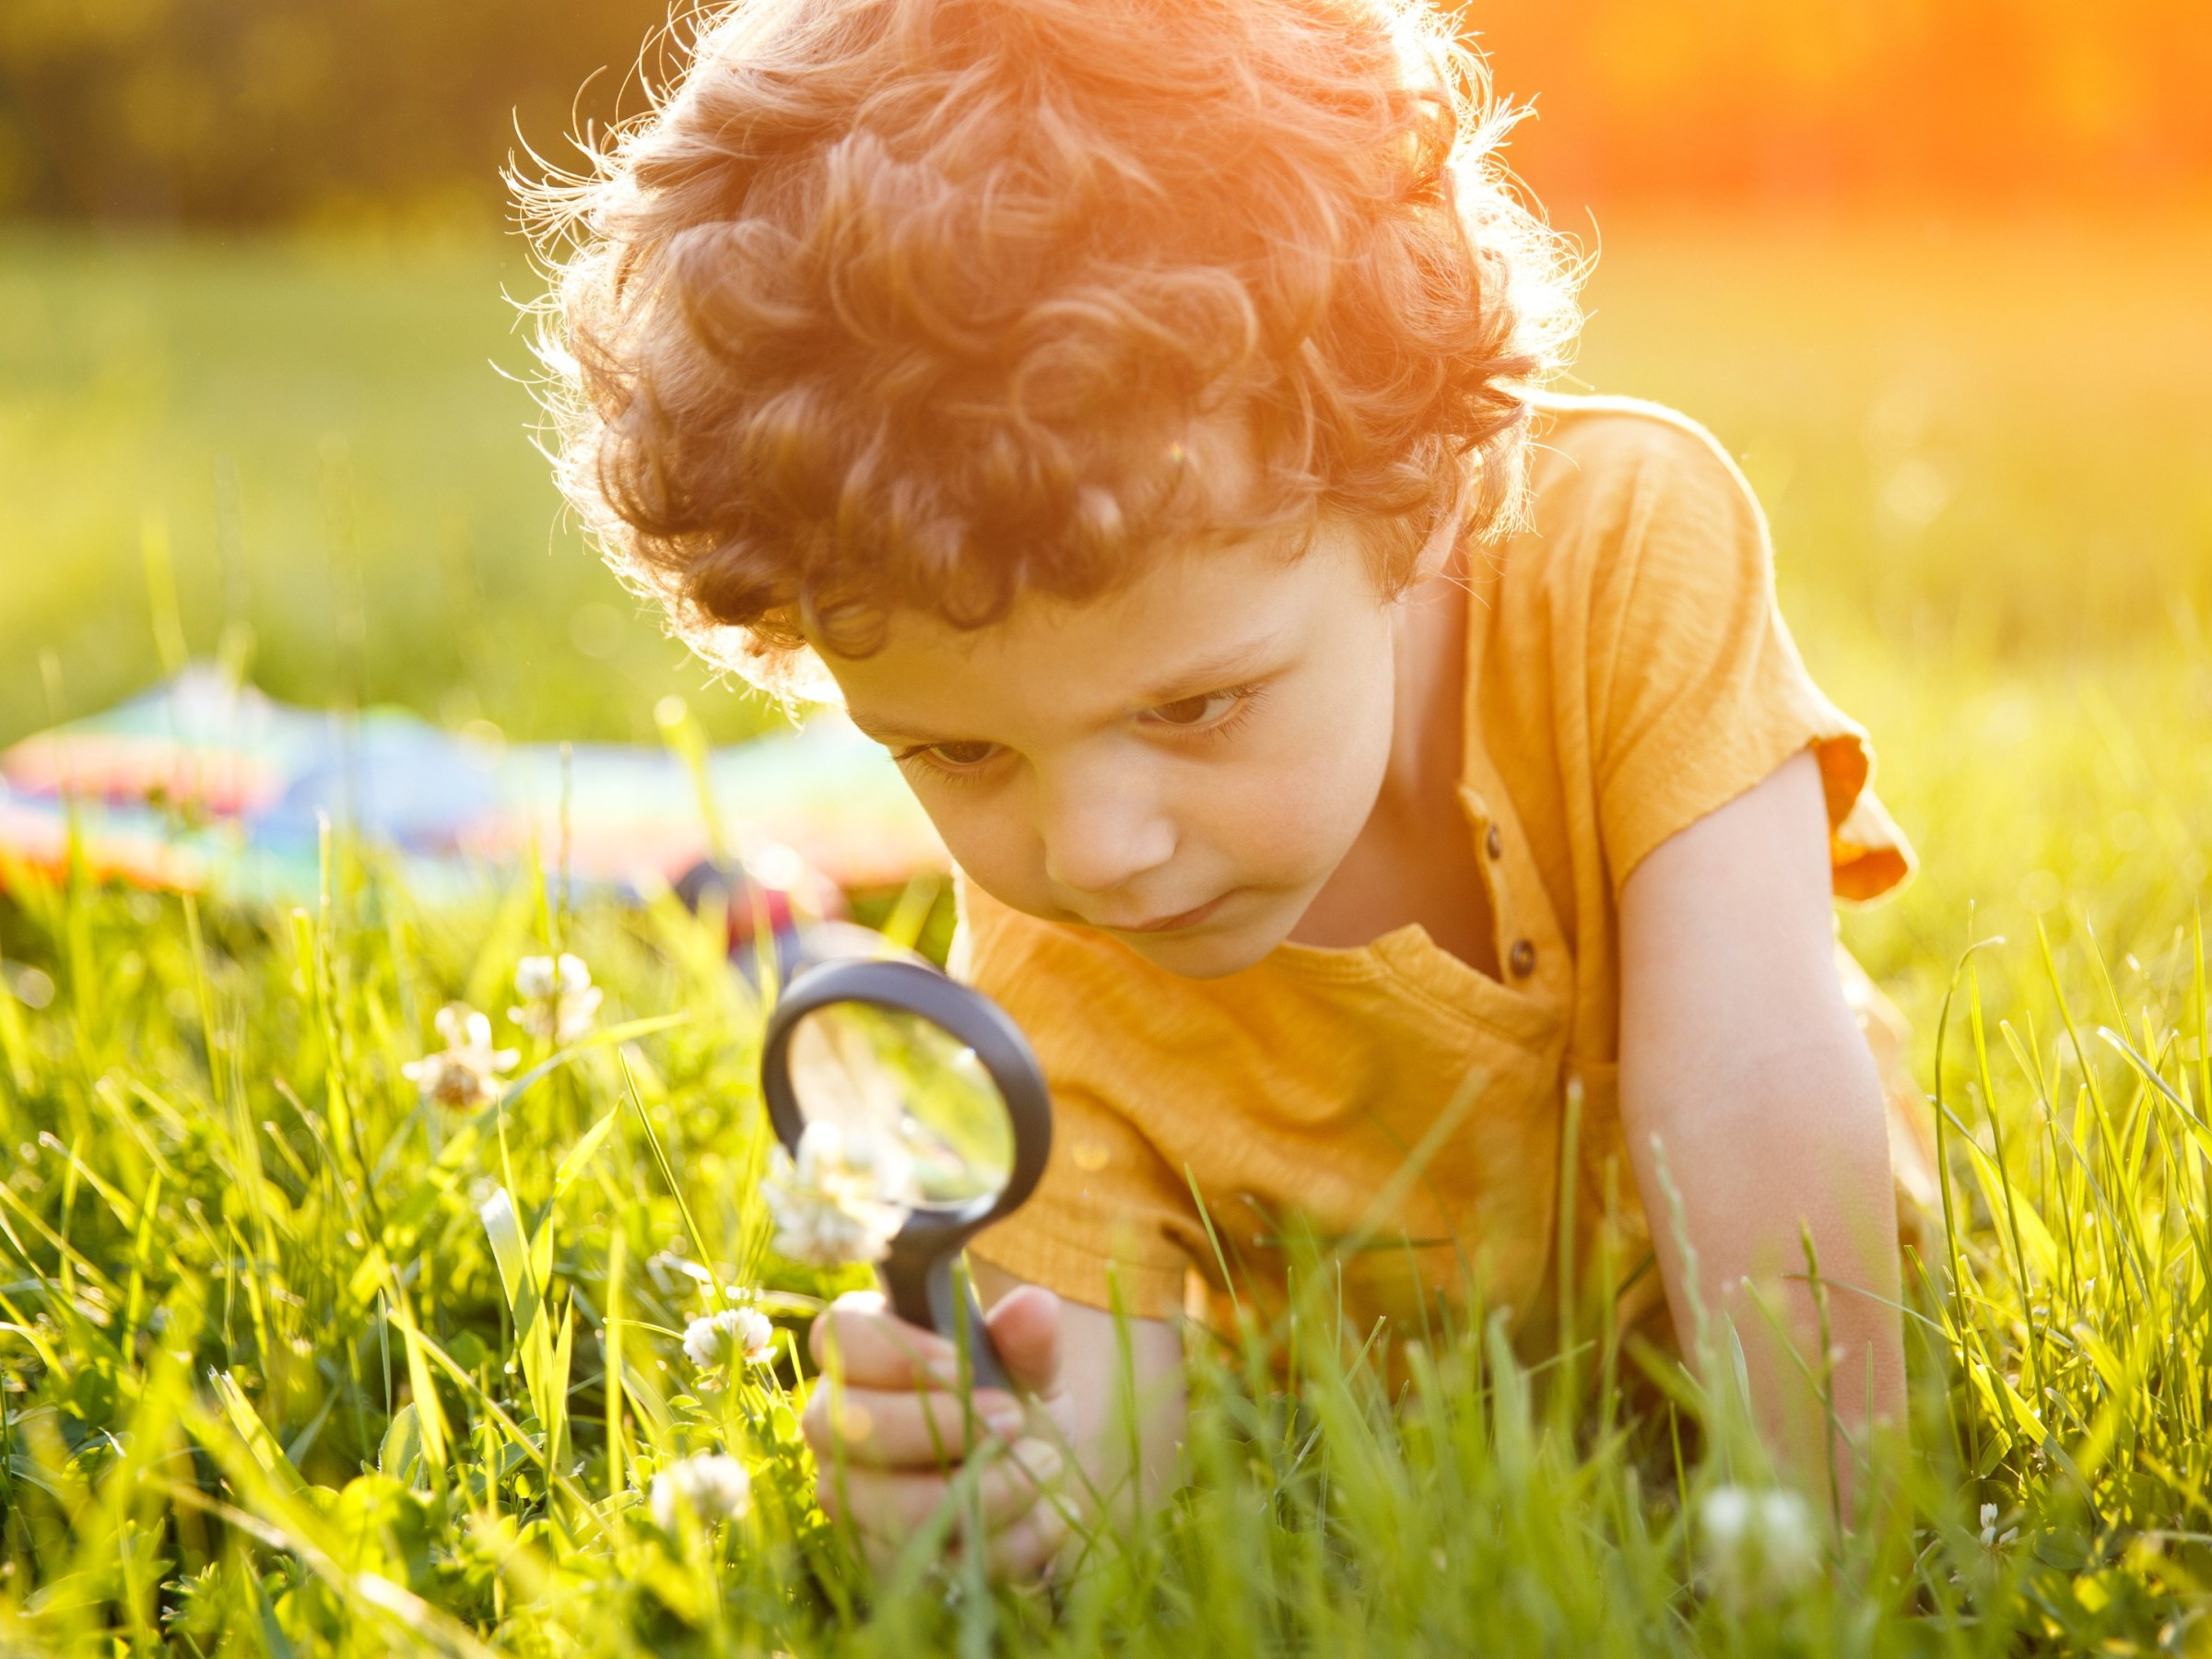 Young curly haired boy studying flower looking through magnifier lying on green grass.